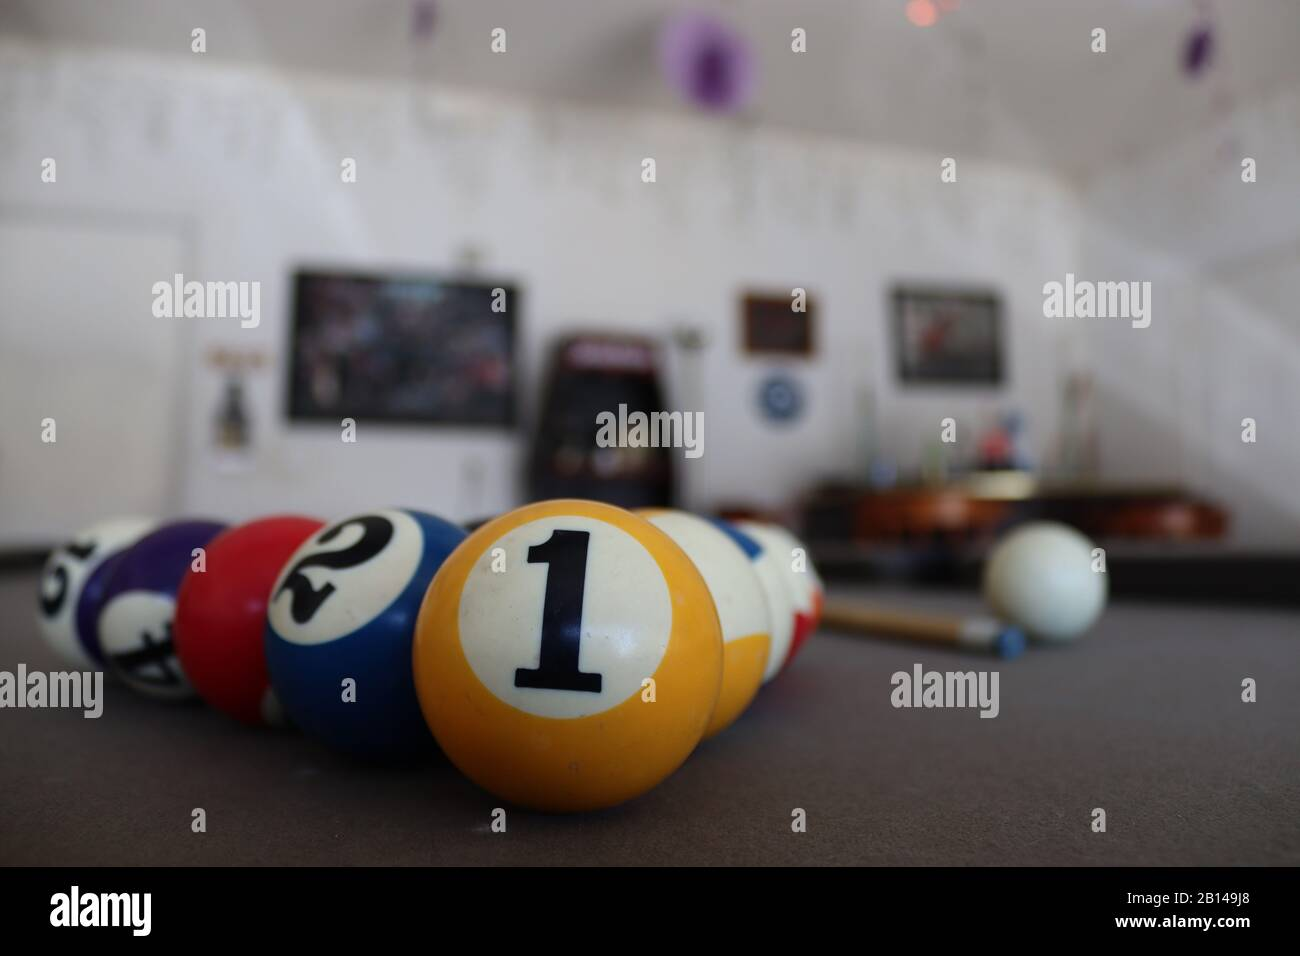 Billard Balls On A Pool Table In The Garage There Is A Bar In The Background With Pictures And Decorations Stock Photo Alamy